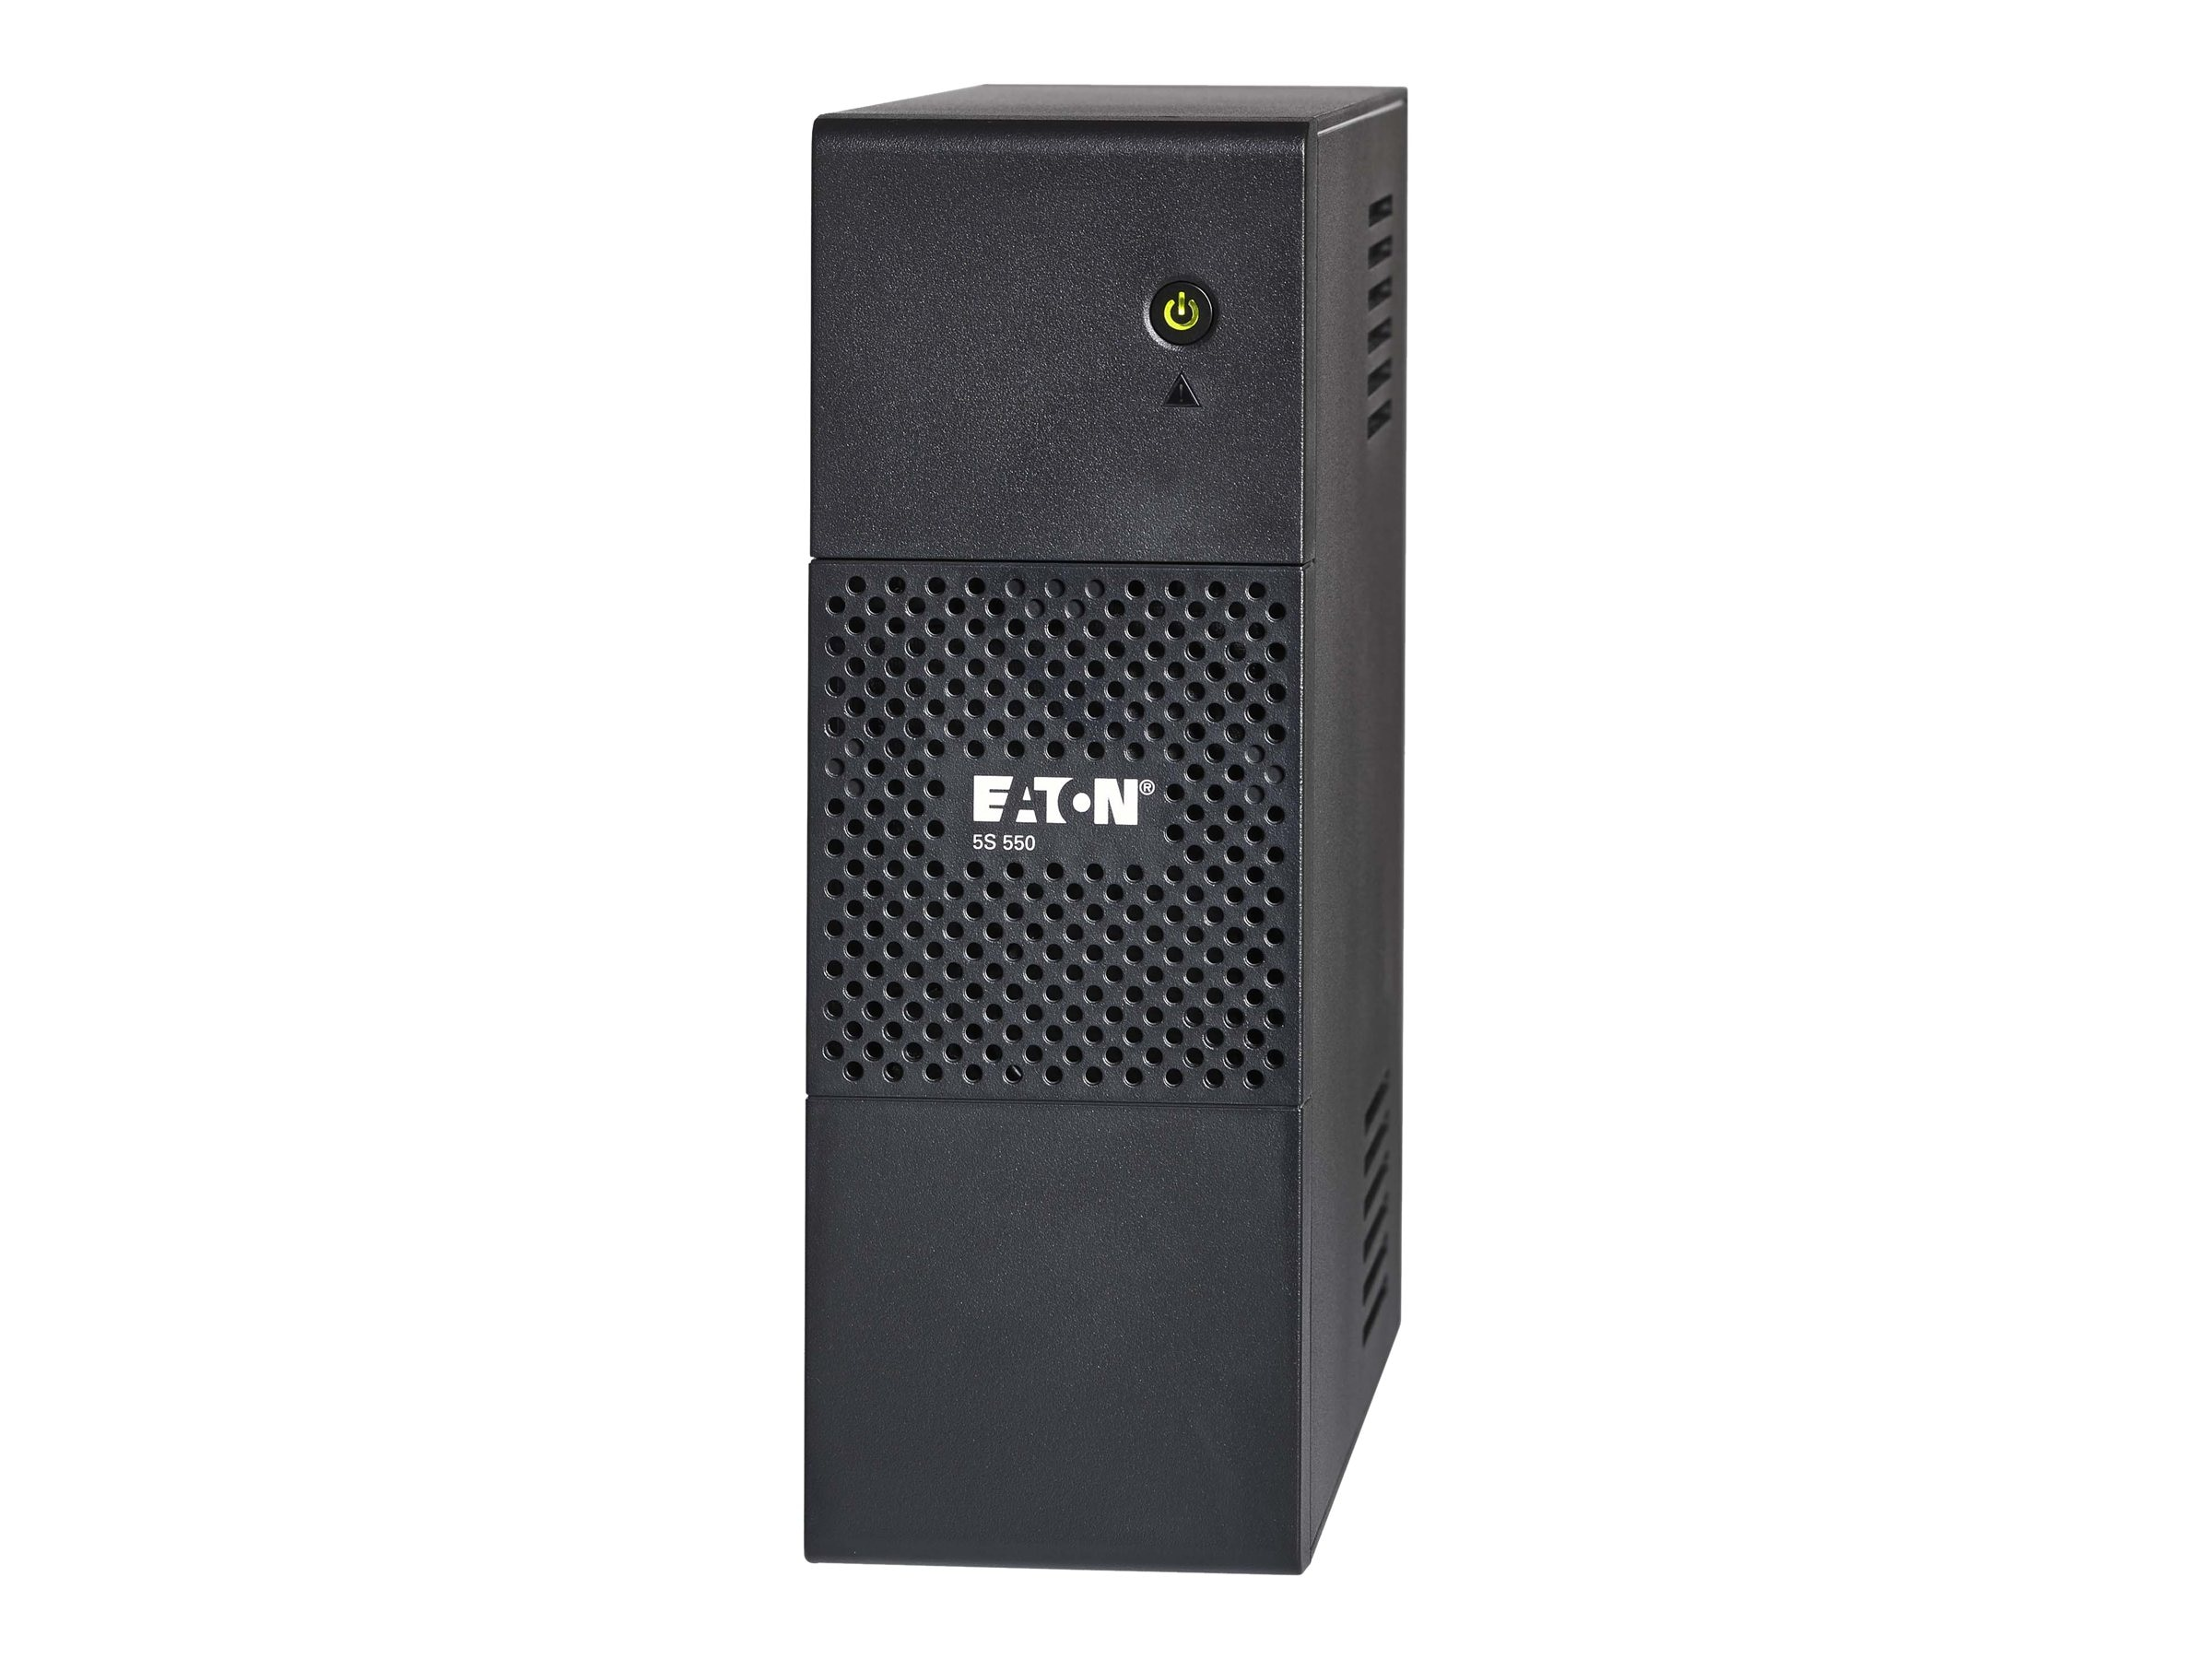 Eaton 5S 700VA 420W Global 208 230V Line-interactive Tower UPS C14 Input (6) C13 Outlets USB